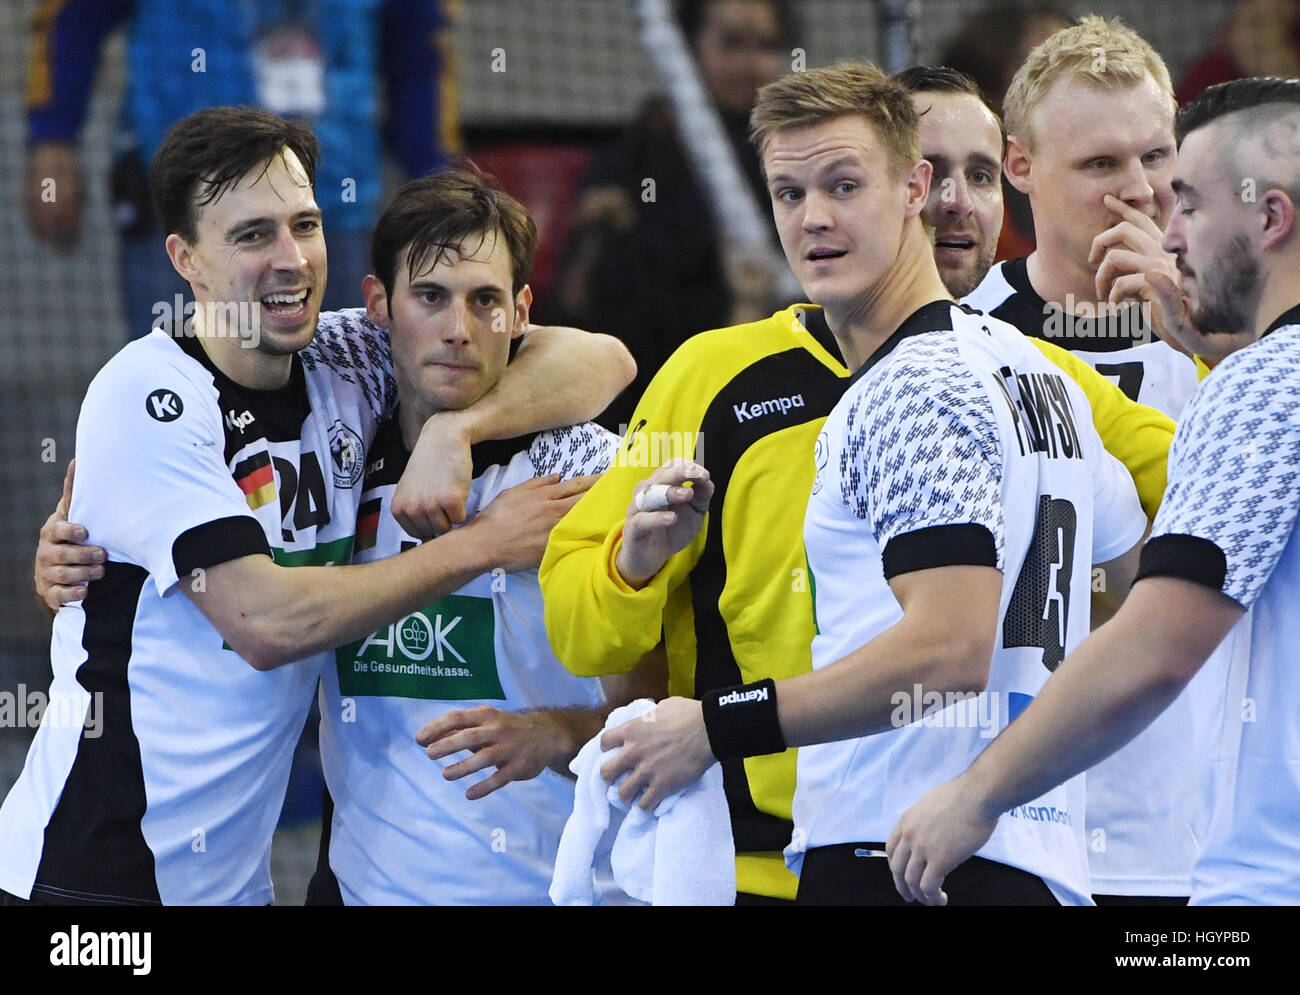 Rouen, France. 13th Jan, 2017. The Germany team celebrates its victory at the end of the men's handball World - Stock Image